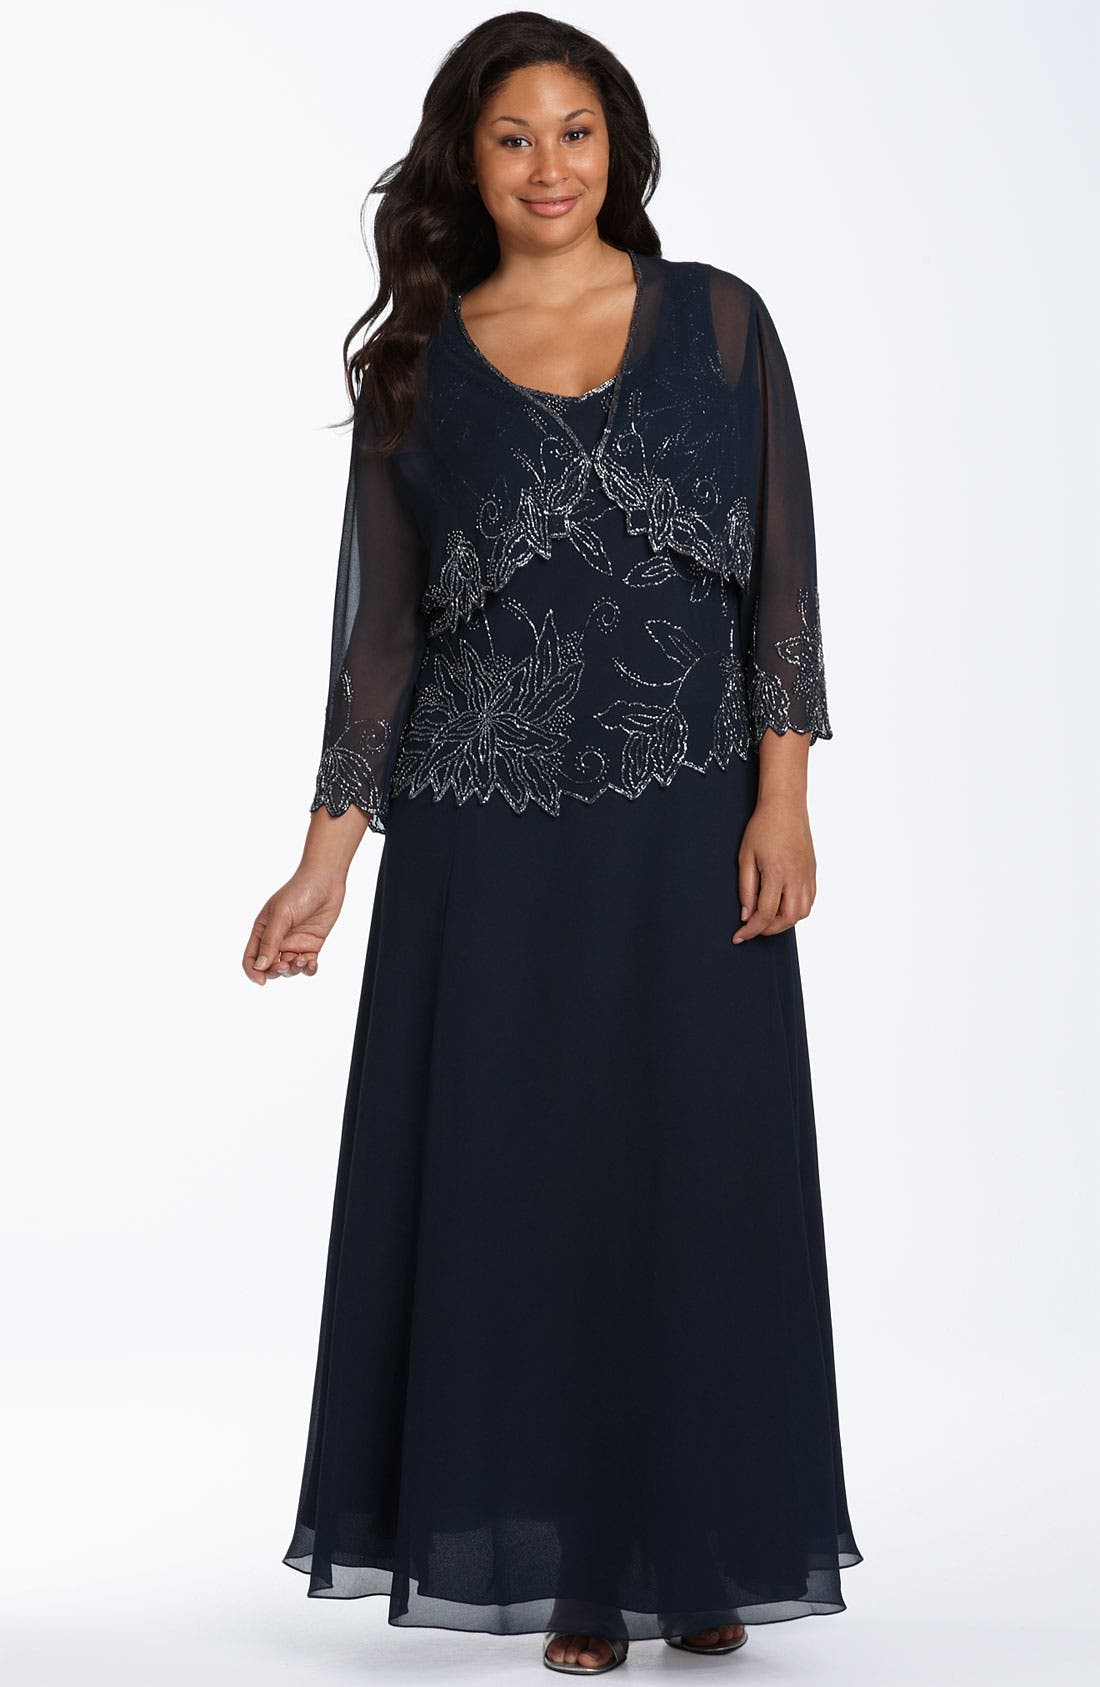 Alternate Image 1 Selected - J Kara Beaded Dress & Sheer Jacket (Plus Size)